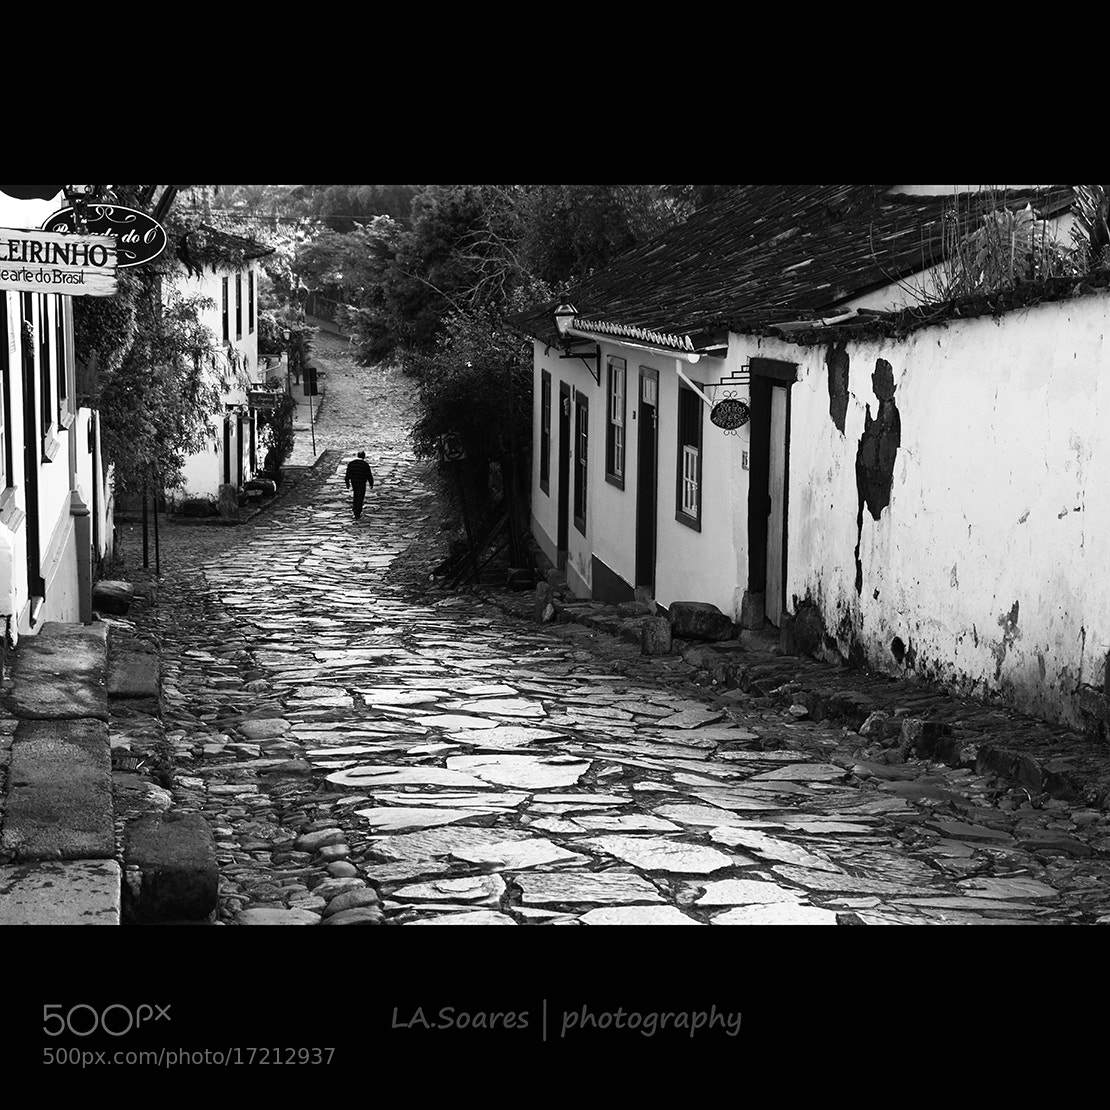 Photograph Tiradentes Revisited by Luiz AE Soares on 500px